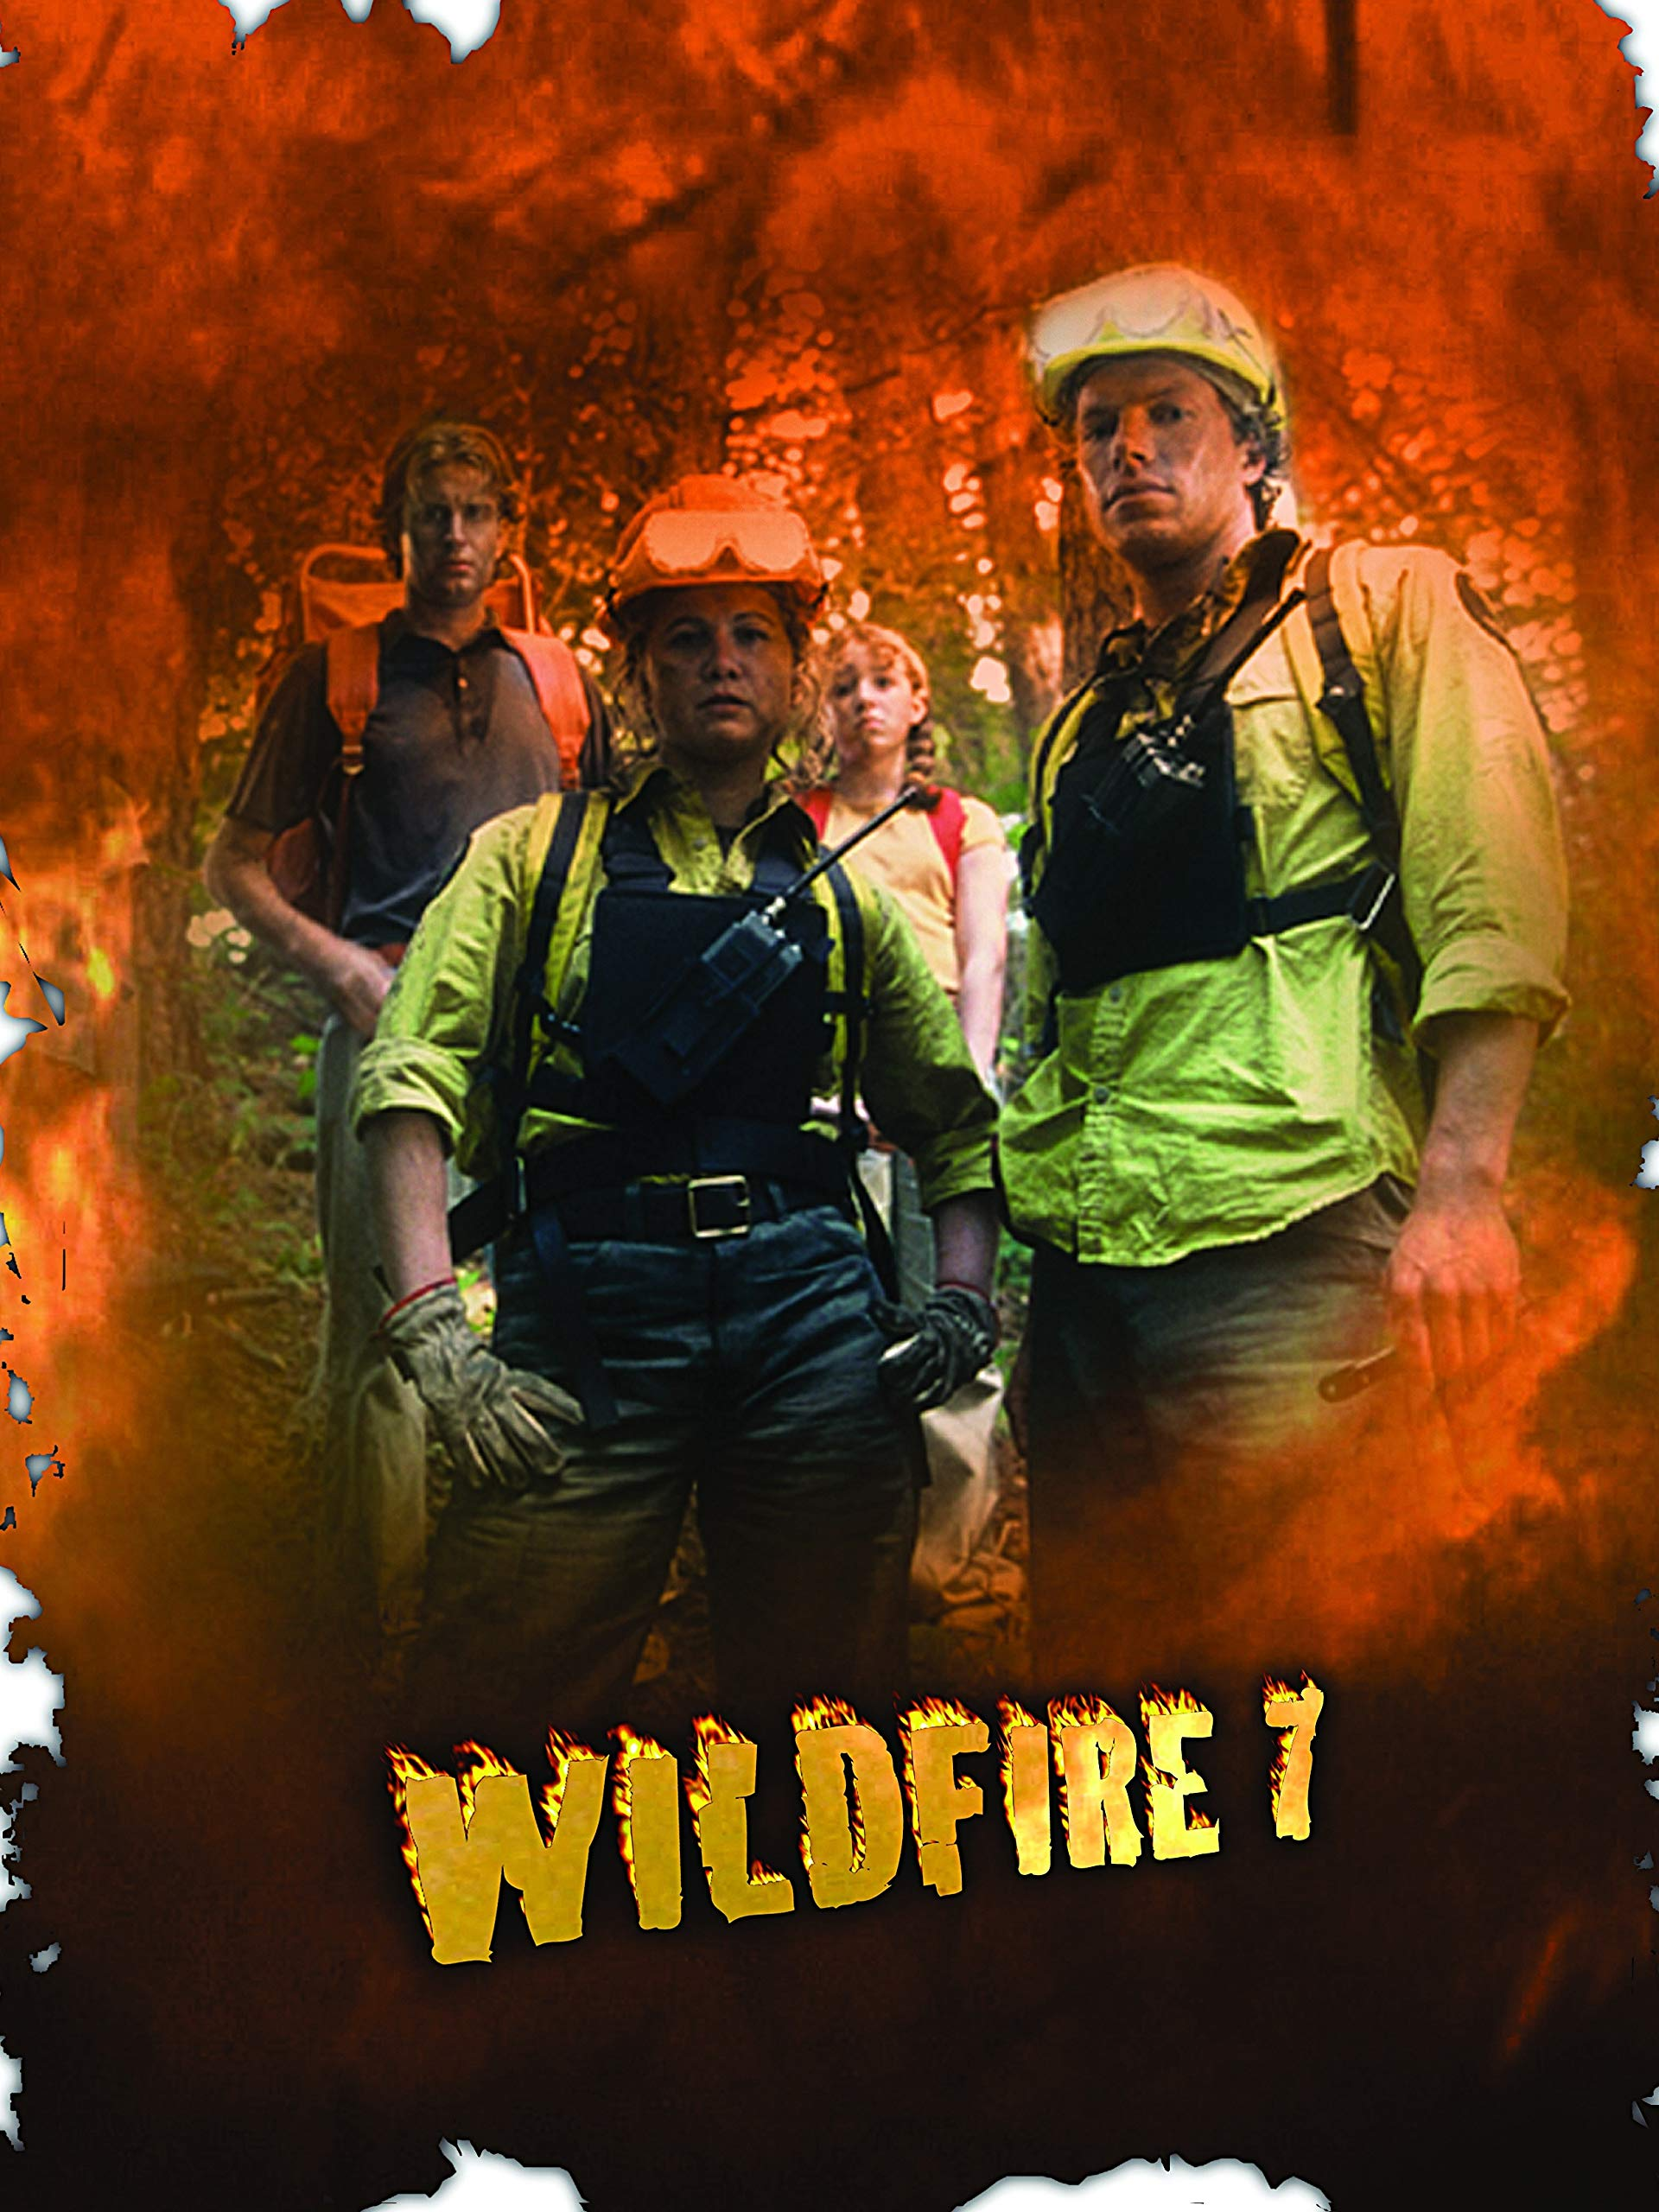 Wildfire 7